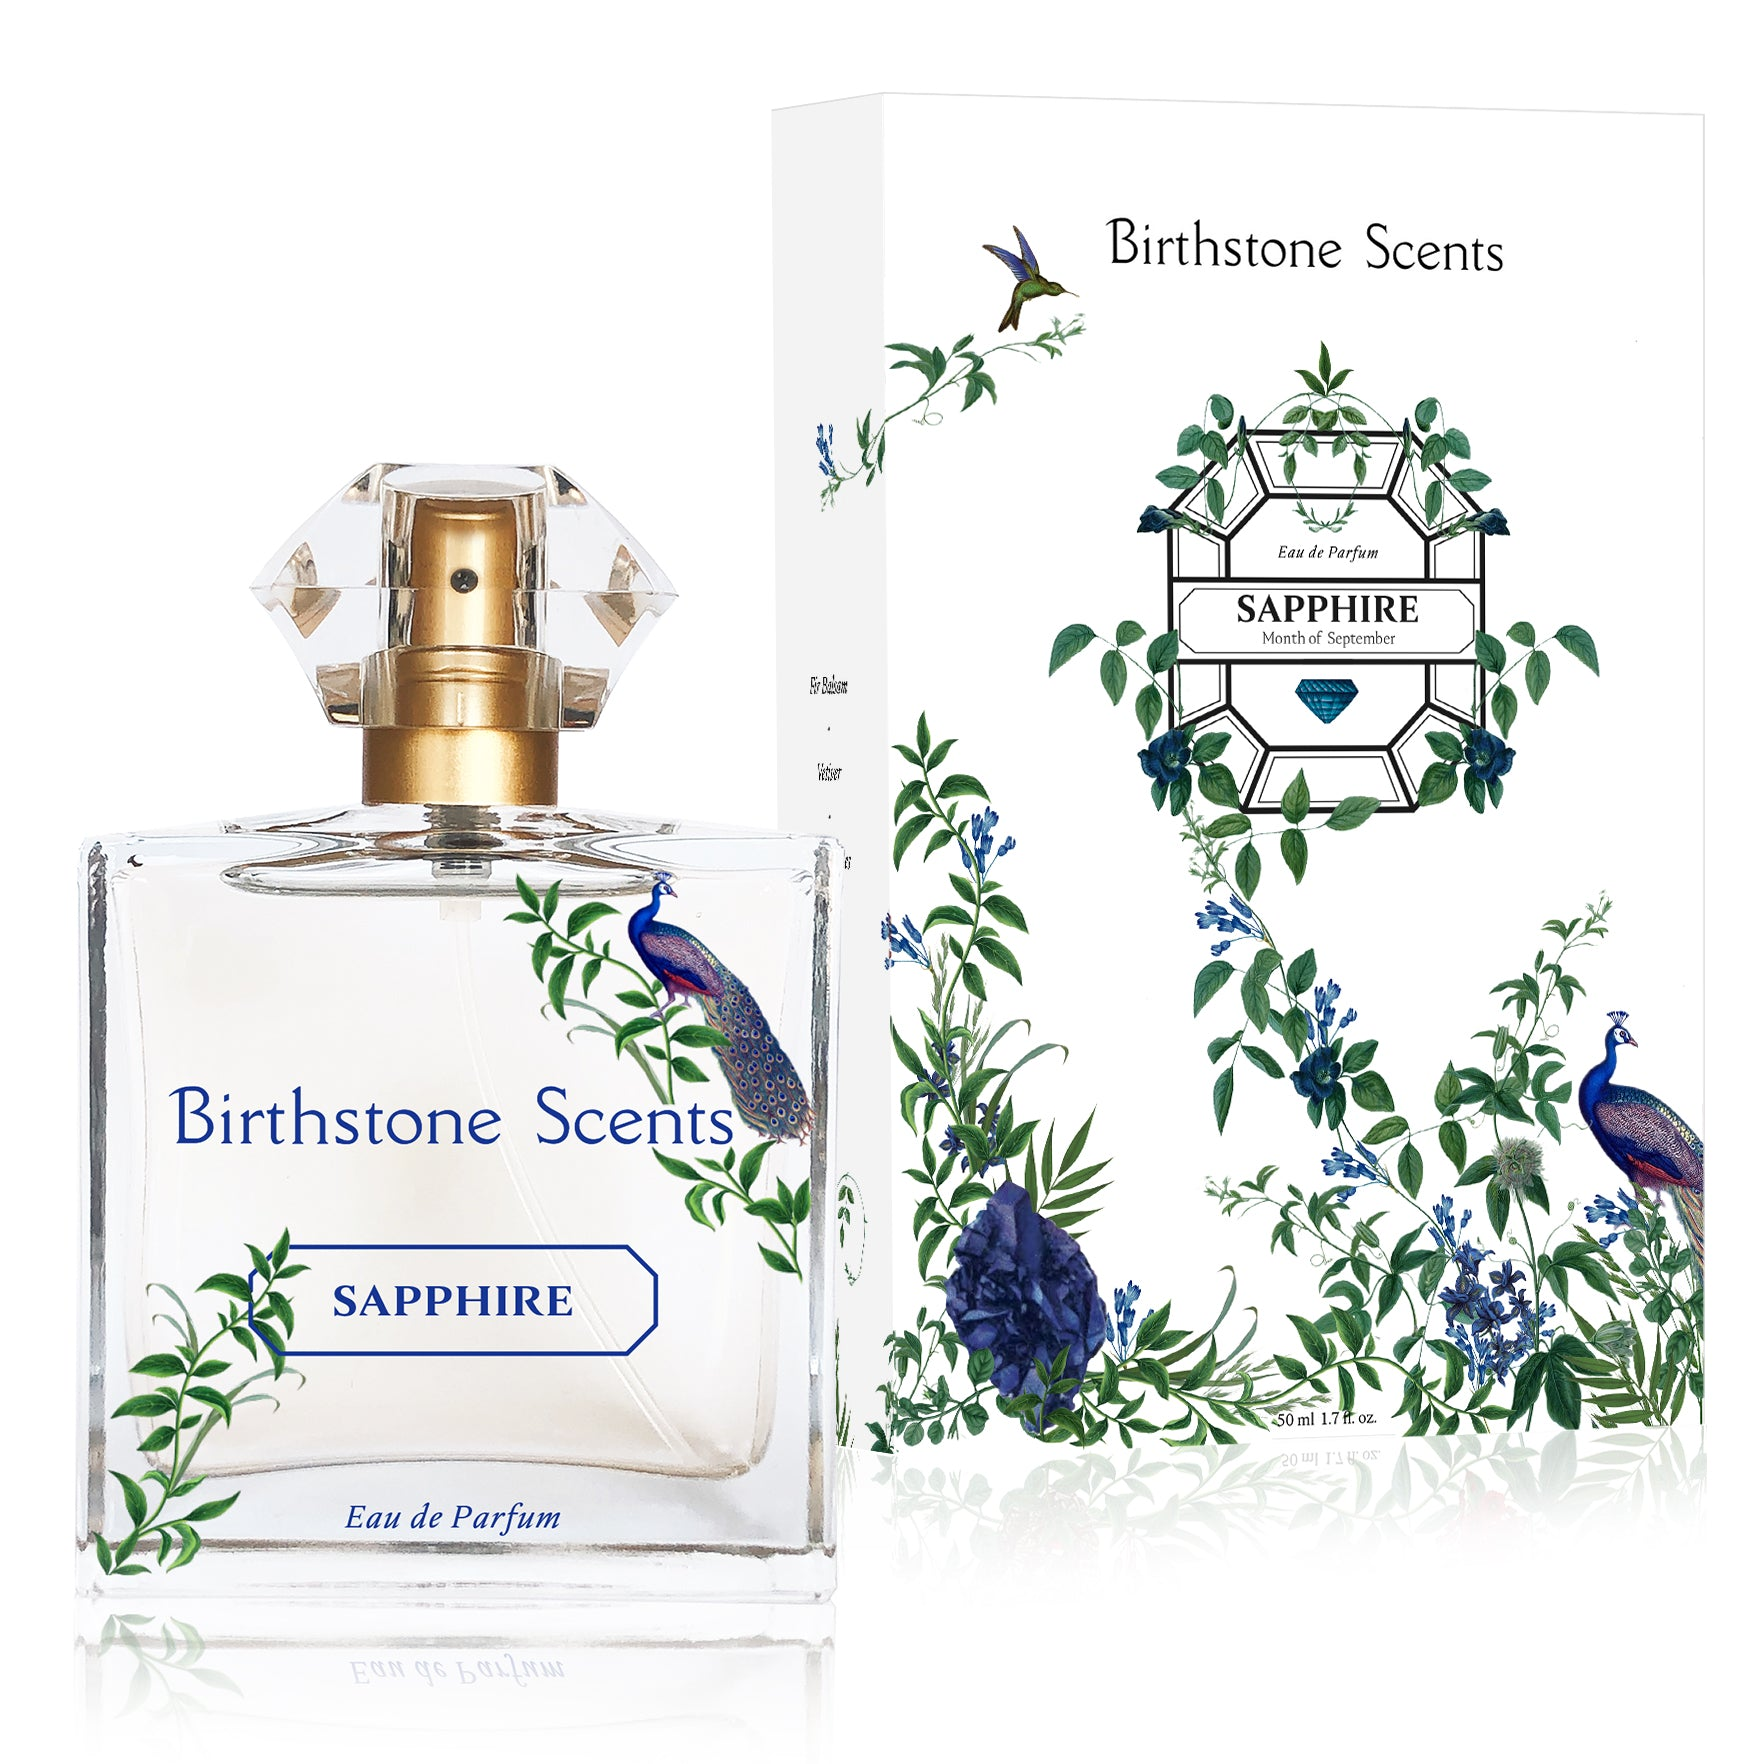 SAPPHIRE PERFUME WITH NECKLACE | September - Birthstone Scents